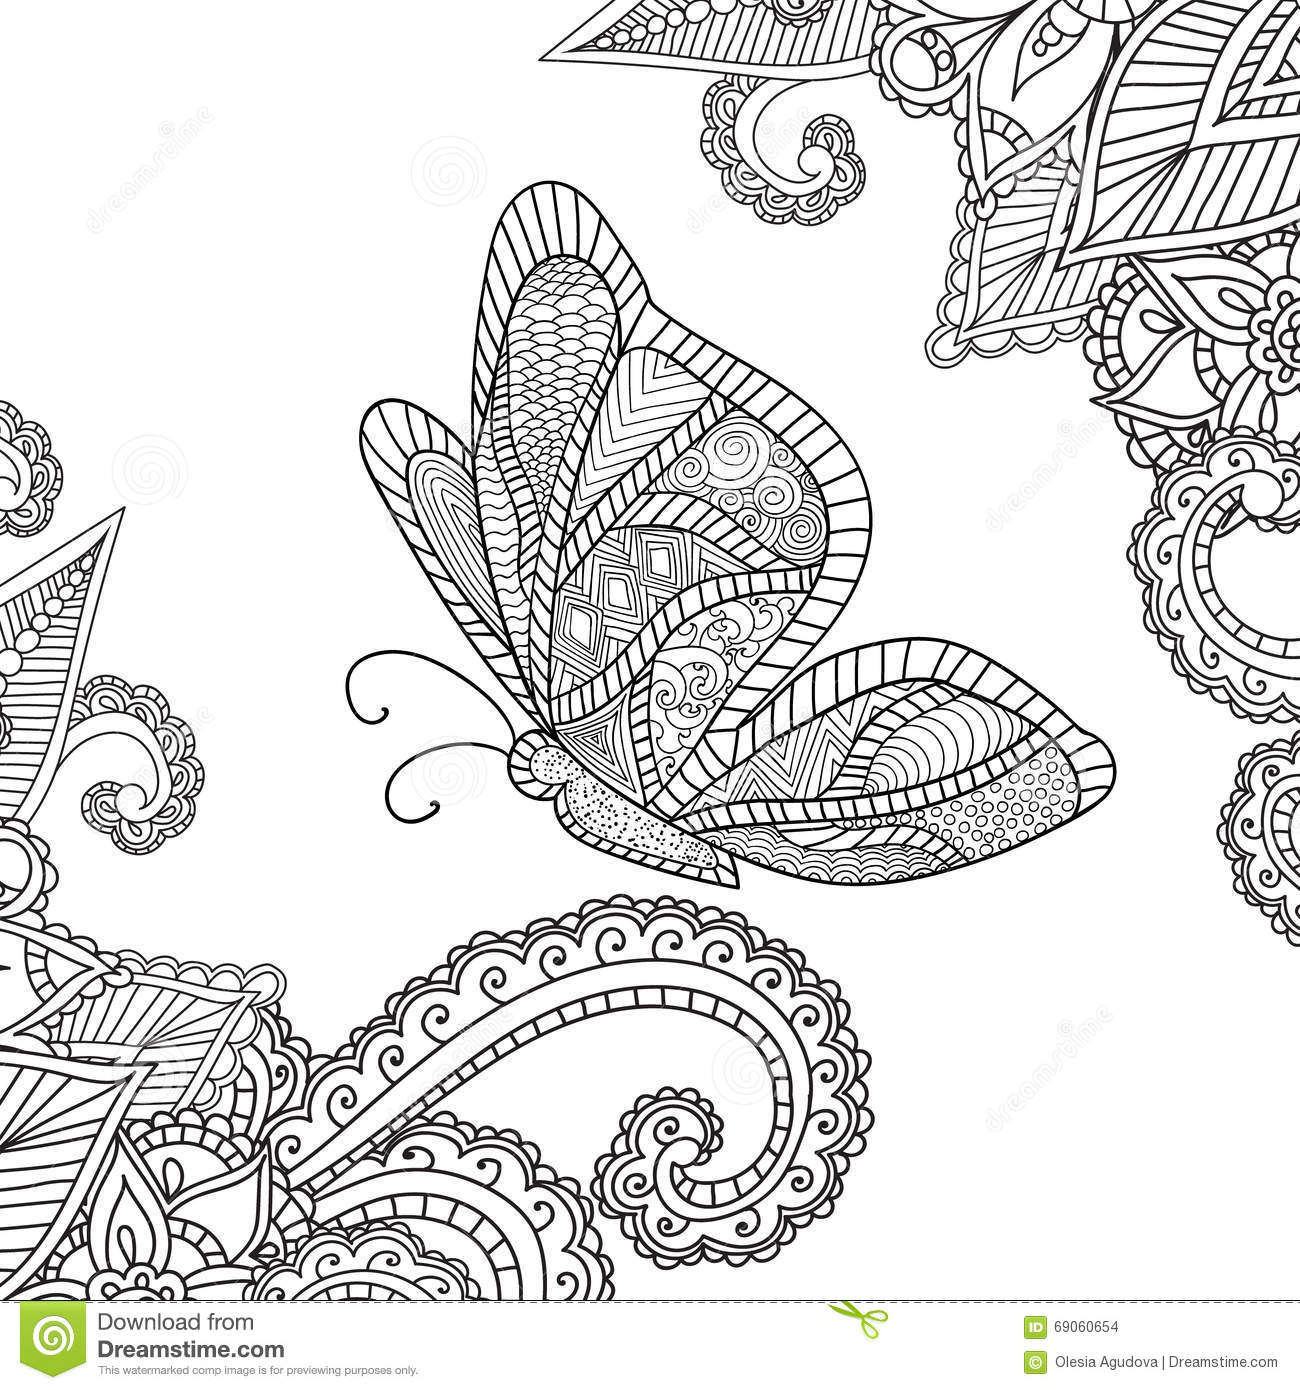 Coloring Pages For Adults.Henna Mehndi Doodles Abstract